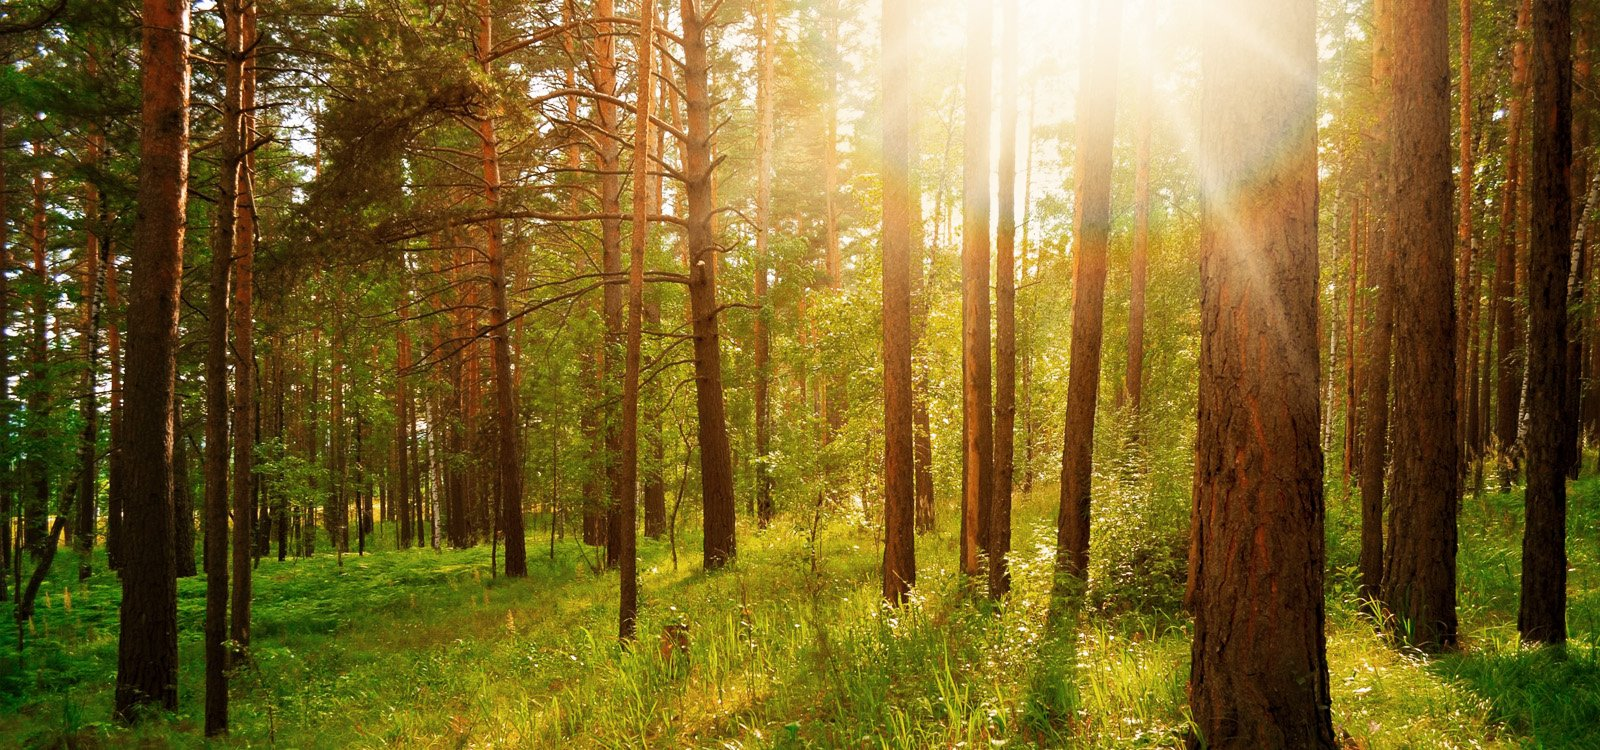 <p>The UK is taking major steps in environmental management, with big plans for quarry restoration.</p>